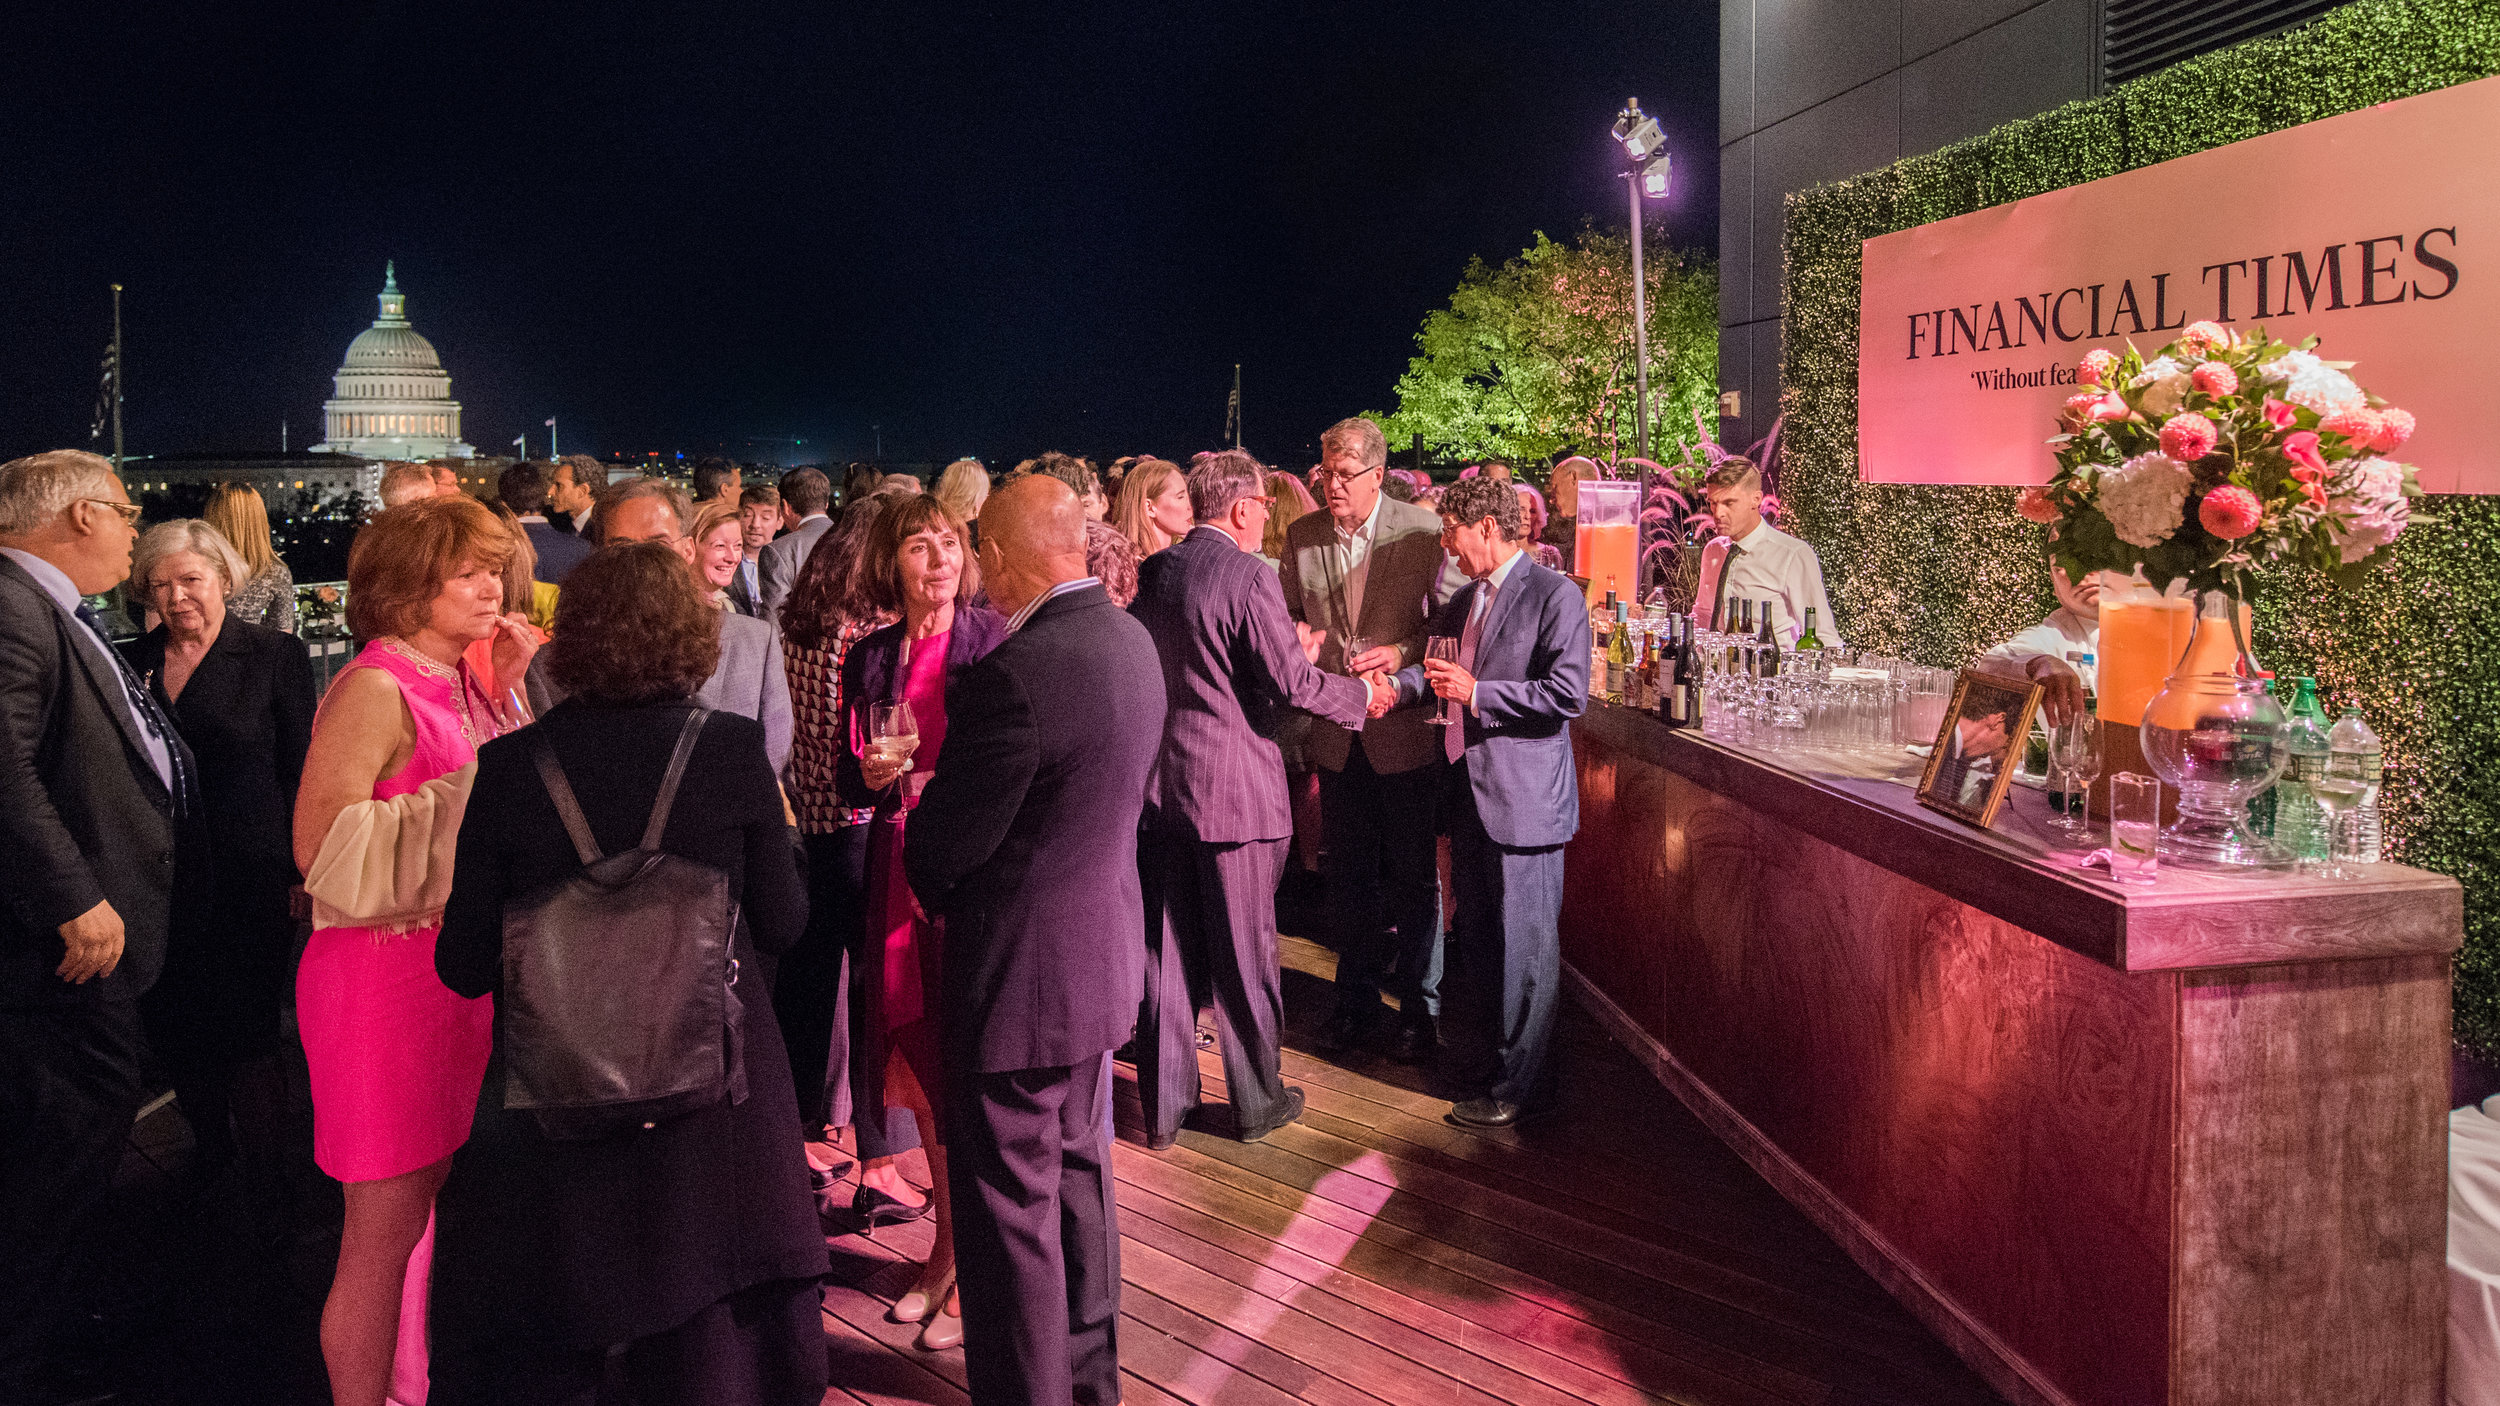 Event attendees socializing near a bar on the rooftop space, with the Capitol building in the background